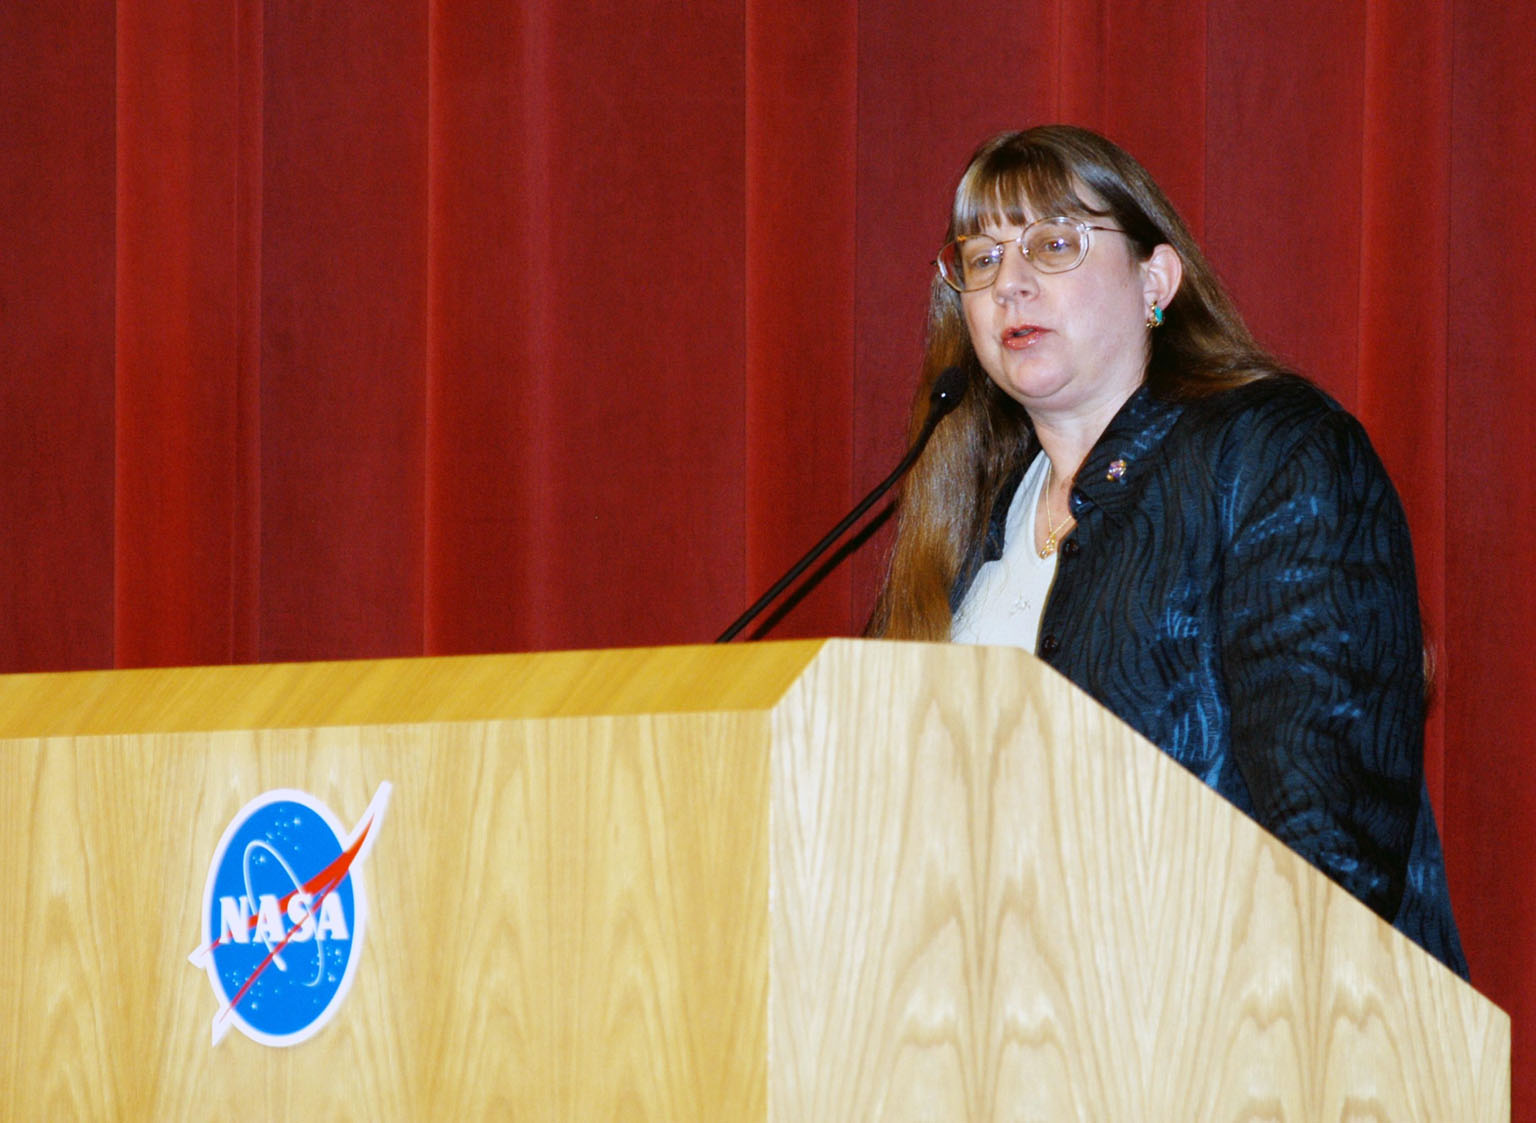 KENNEDY SPACE CENTER, FLA. -- Lynn Cline, Deputy Associate Administrator for Space Flight addresses KSC employees assembled in the Training Auditorium for a Culture Change Process All Hands Meeting. The purpose of the meeting was for employees to gain further insight into the Agency?s Vision for Space Exploration and the direction cultural change will take at KSC in order to assume its role within this vision. Other participants included James W. Kennedy, KSC director; Jim Jennings, Deputy Associate Administrator for Institutions and Asset Management; Bob Sieck, former Director of Space Shuttle Processing at KSC; and Jim Wetherbee, astronaut and Technical Assistant to the Director of Safety and Mission Assurance at Johnson Space Center. Following their remarks, members of the panel entertained questions and comments from the audience.